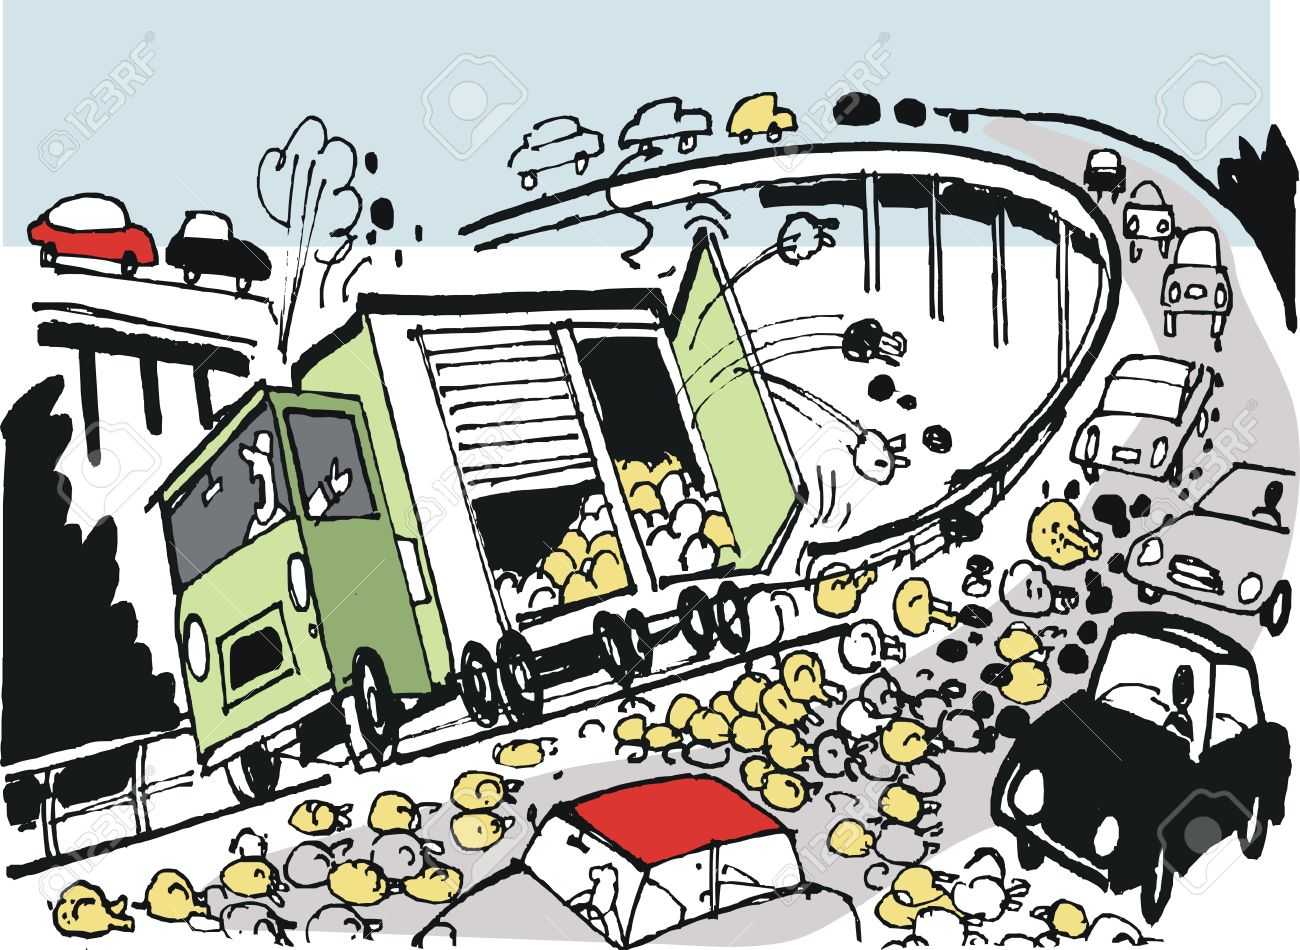 1300x950 Drawing Of Delivery Truck Spill Of Frozen Chickens On Freeway